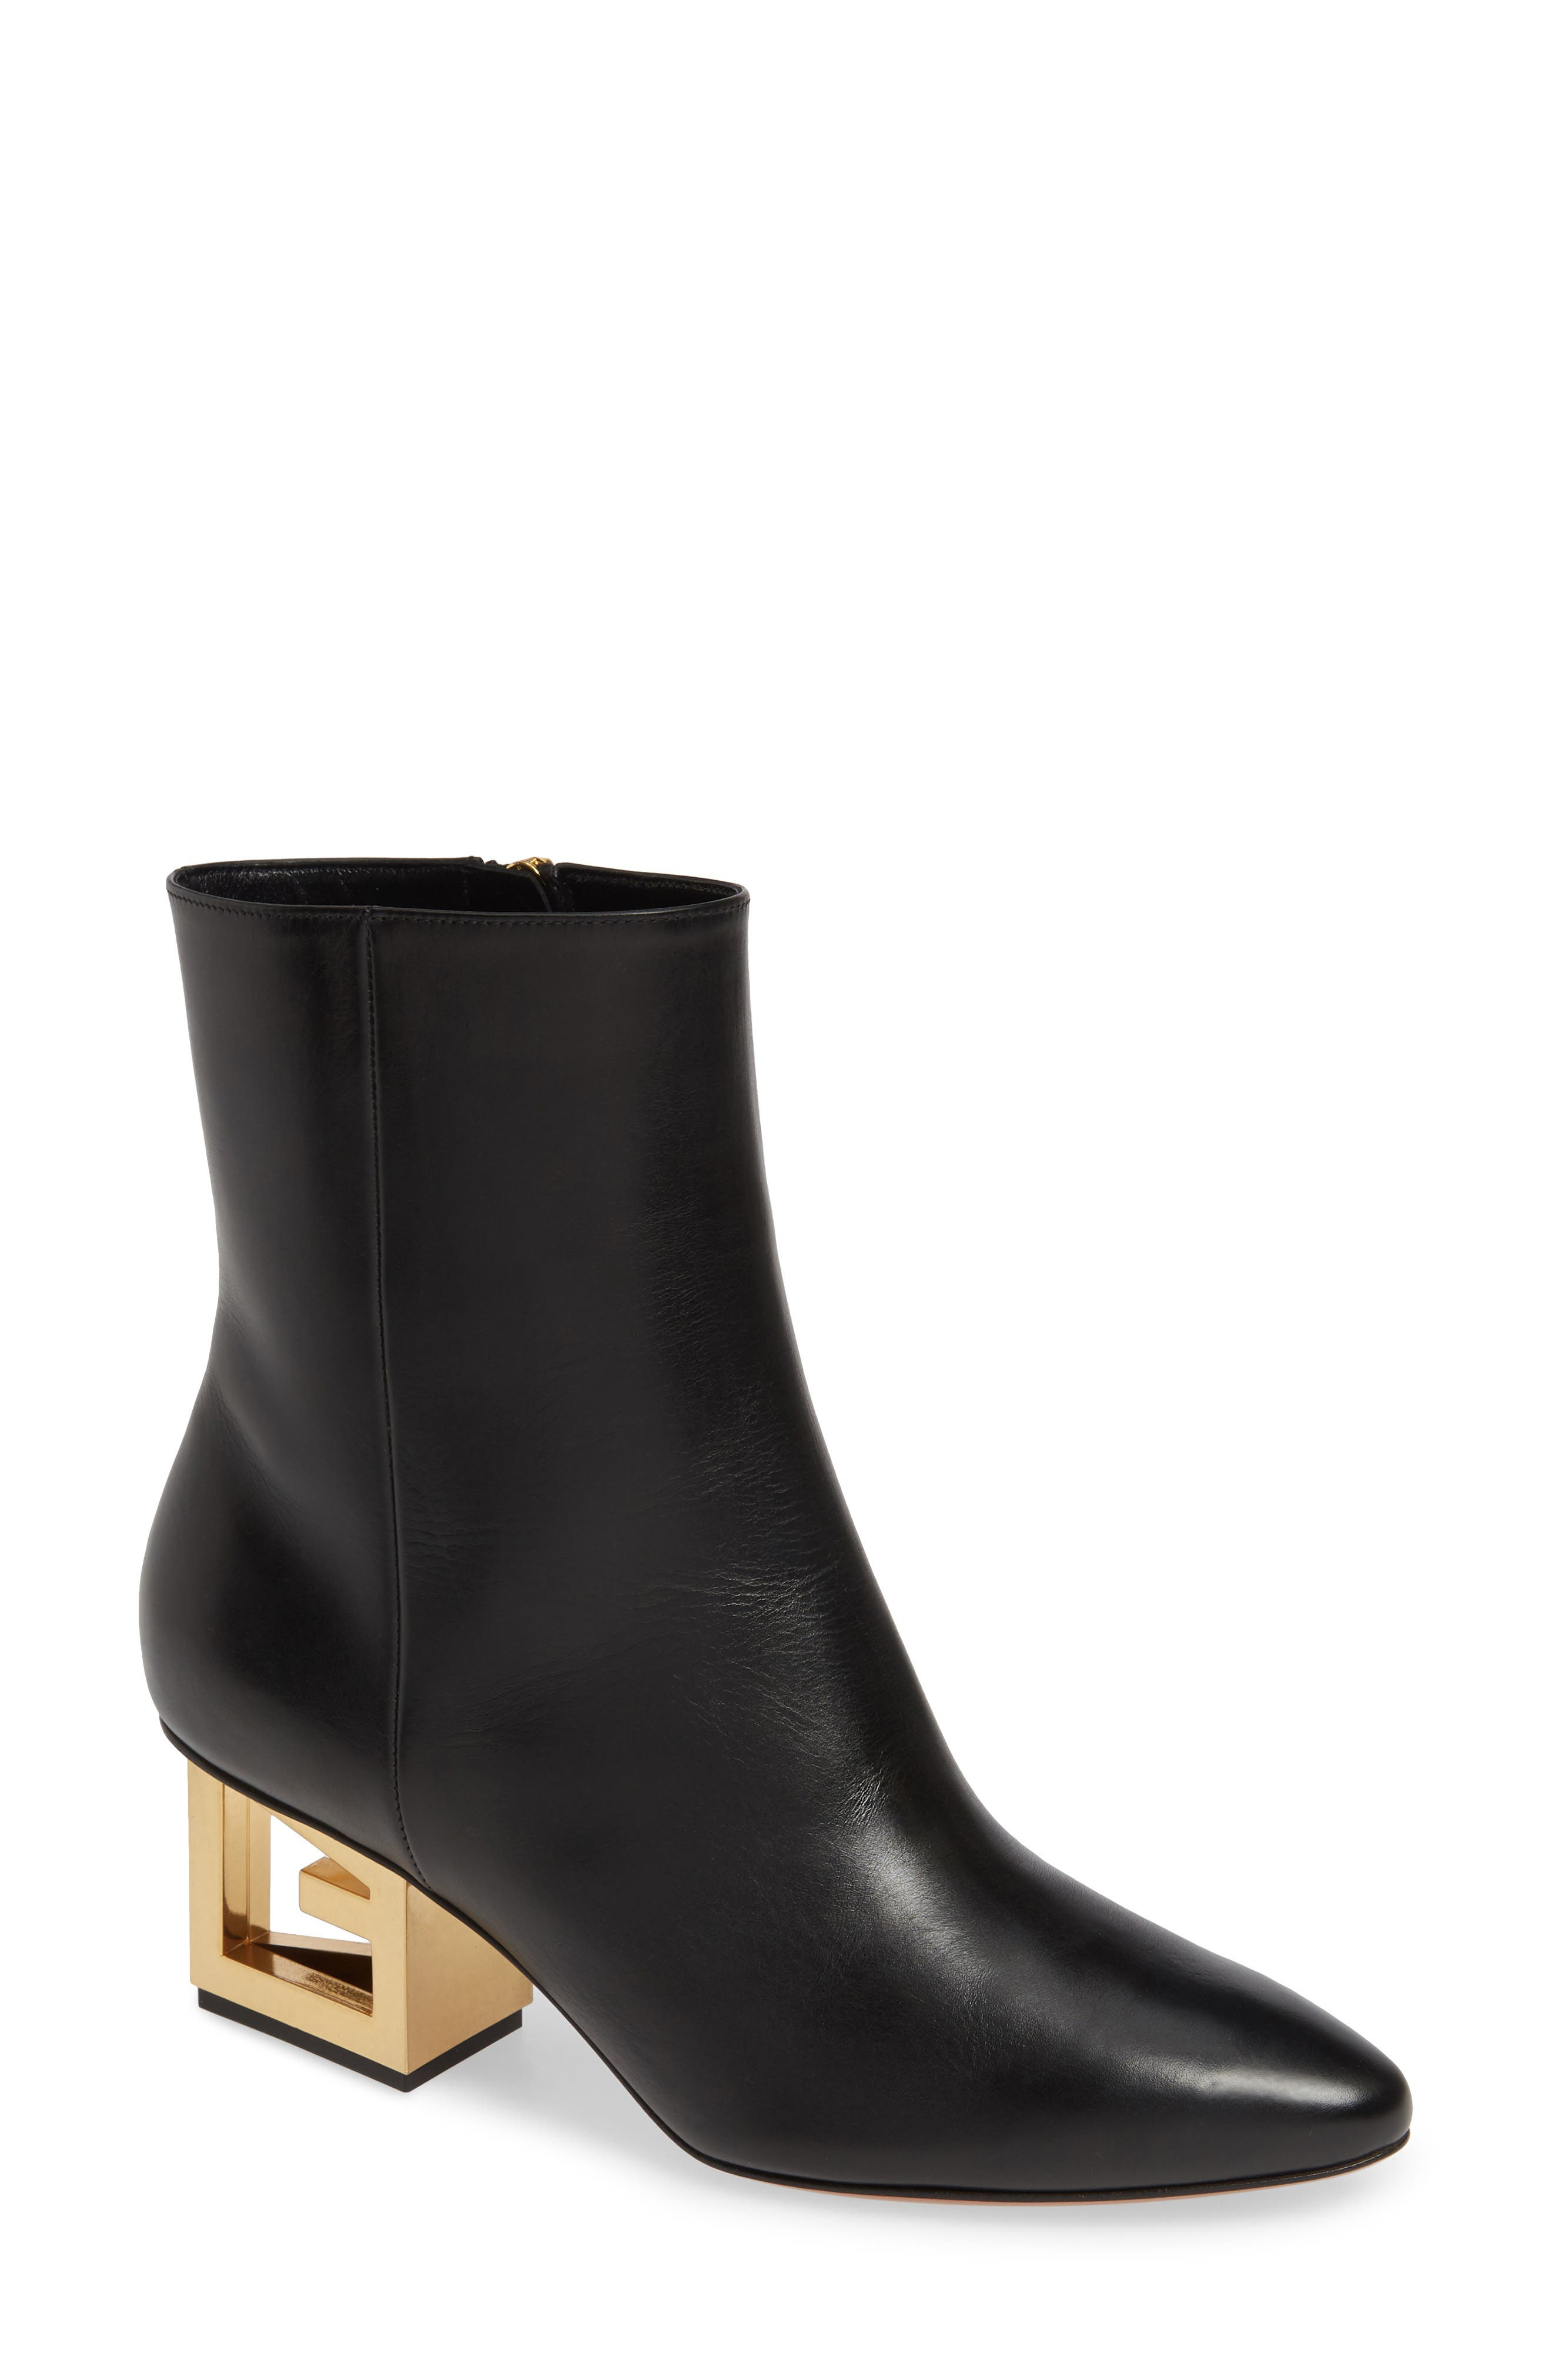 Givenchy Triangle Heel Ankle Boot, Black